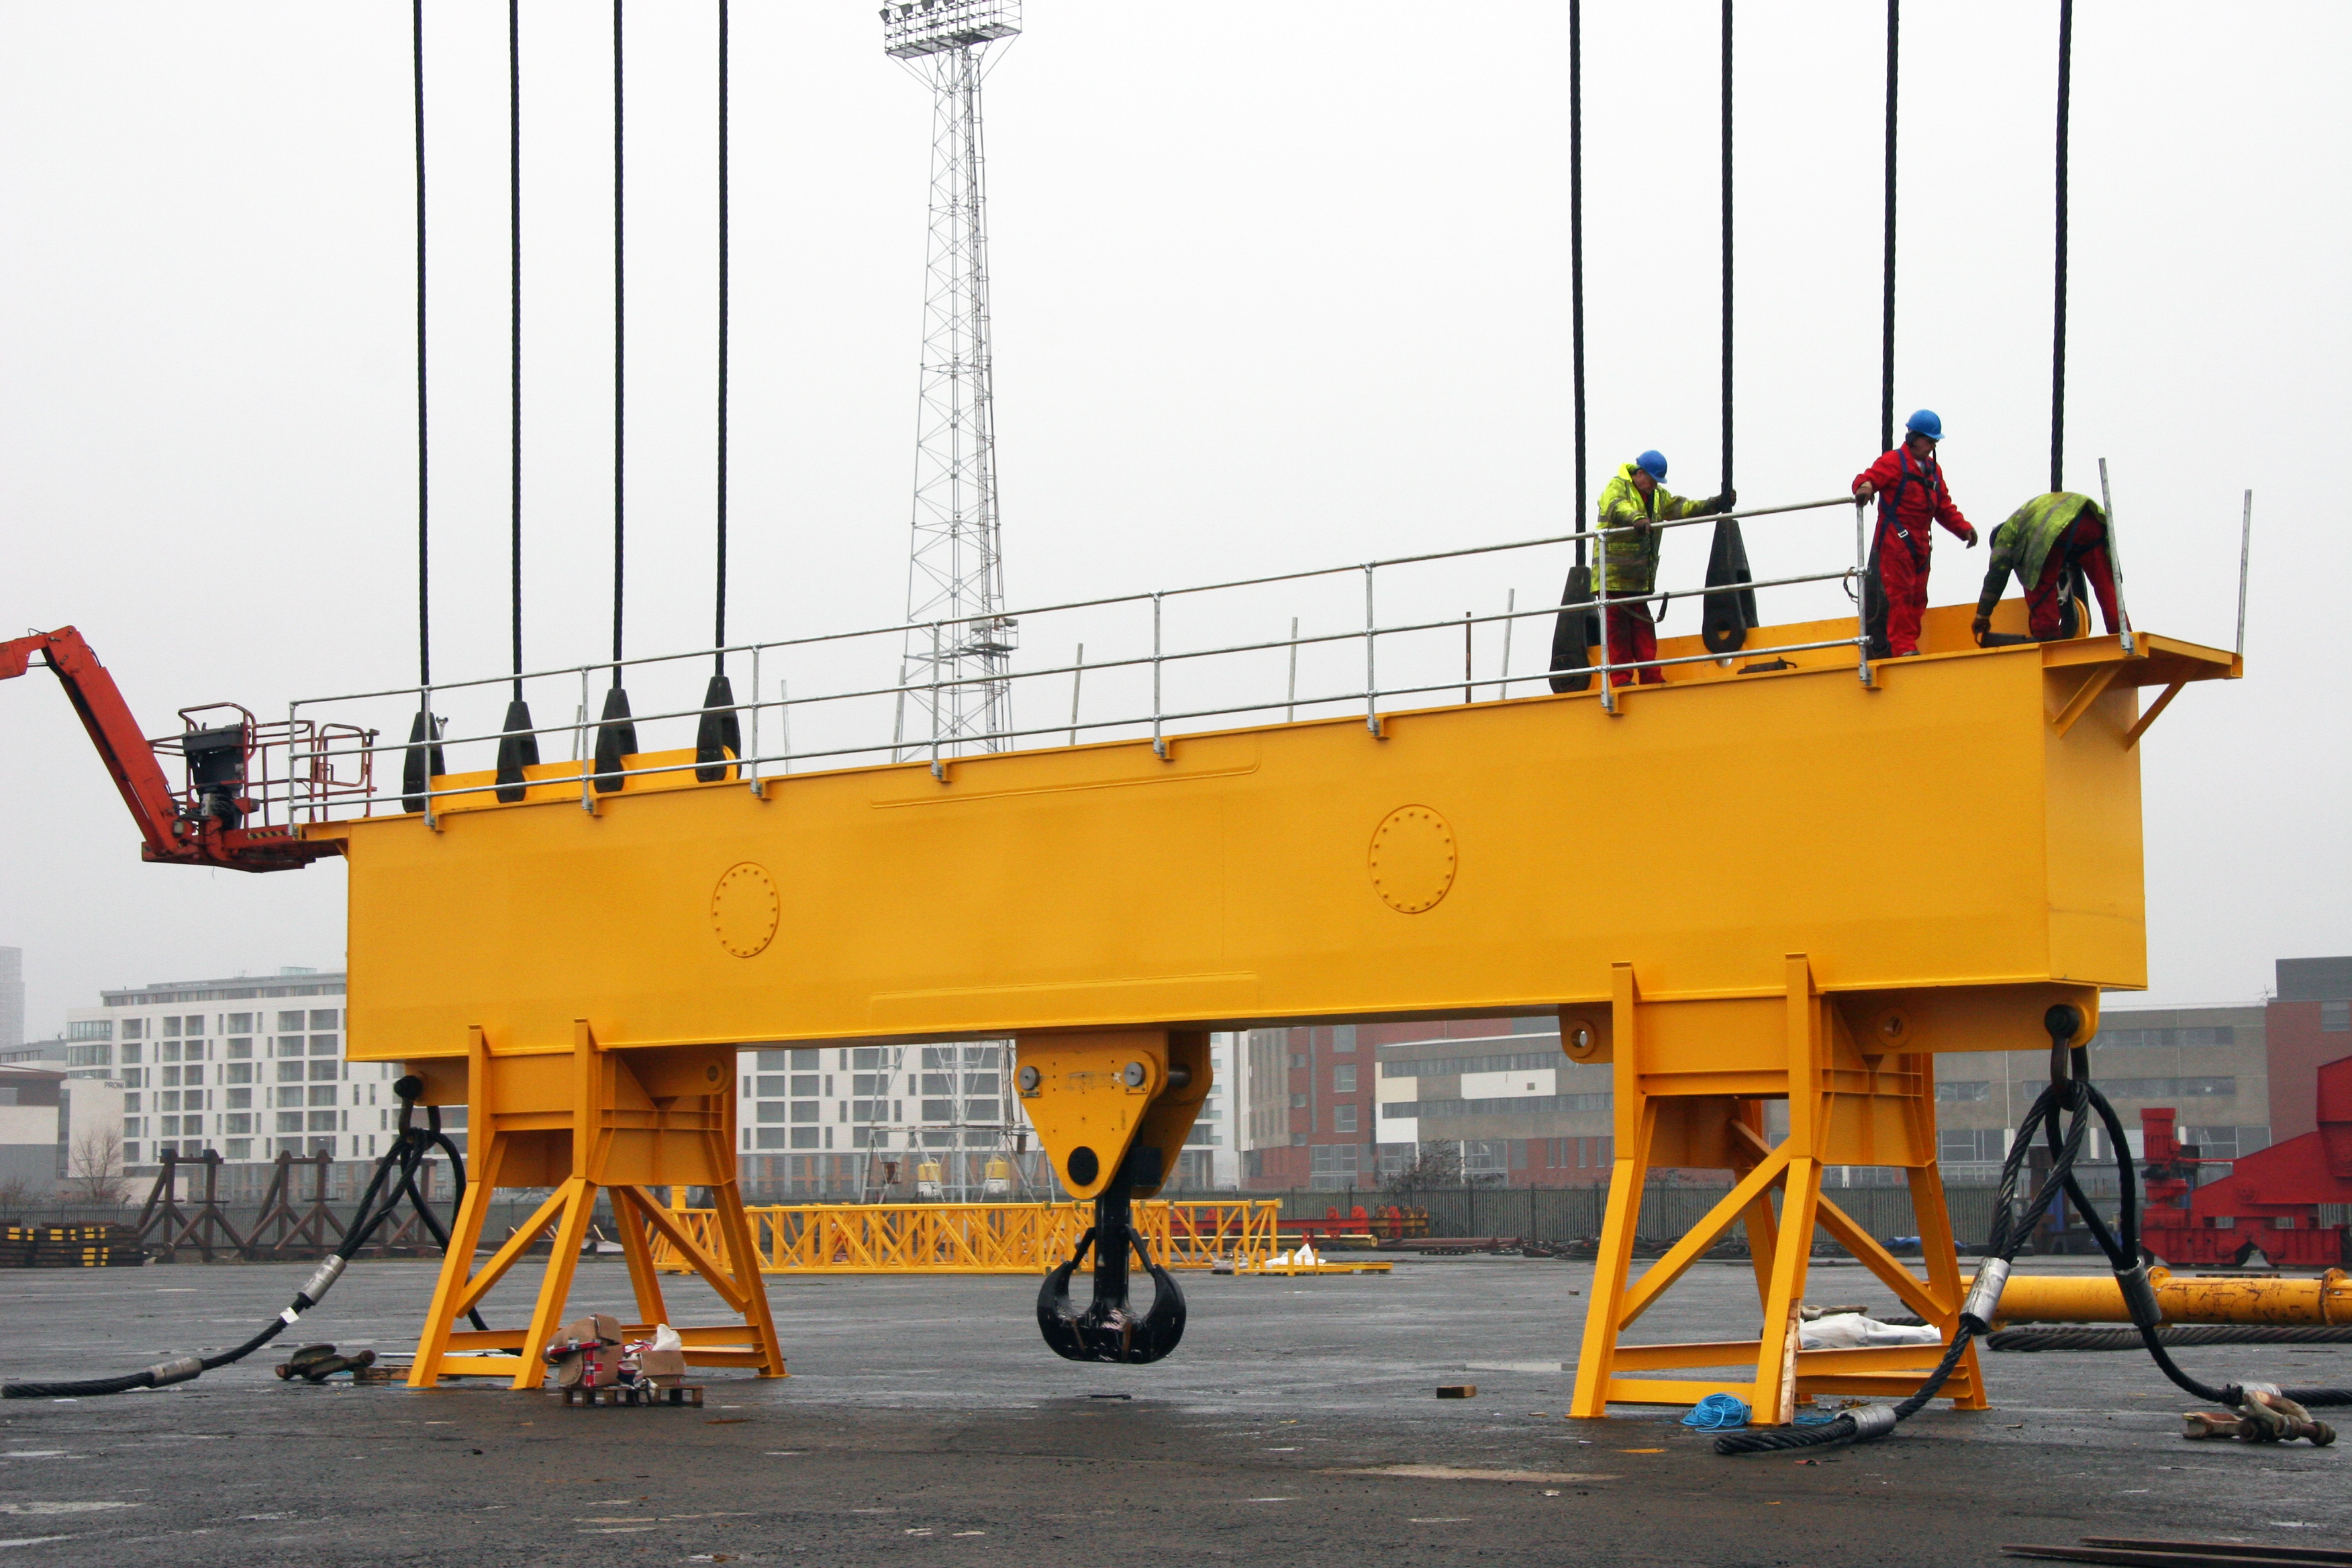 Modulift Super Heavy Lifting Beam being prepared for lifting